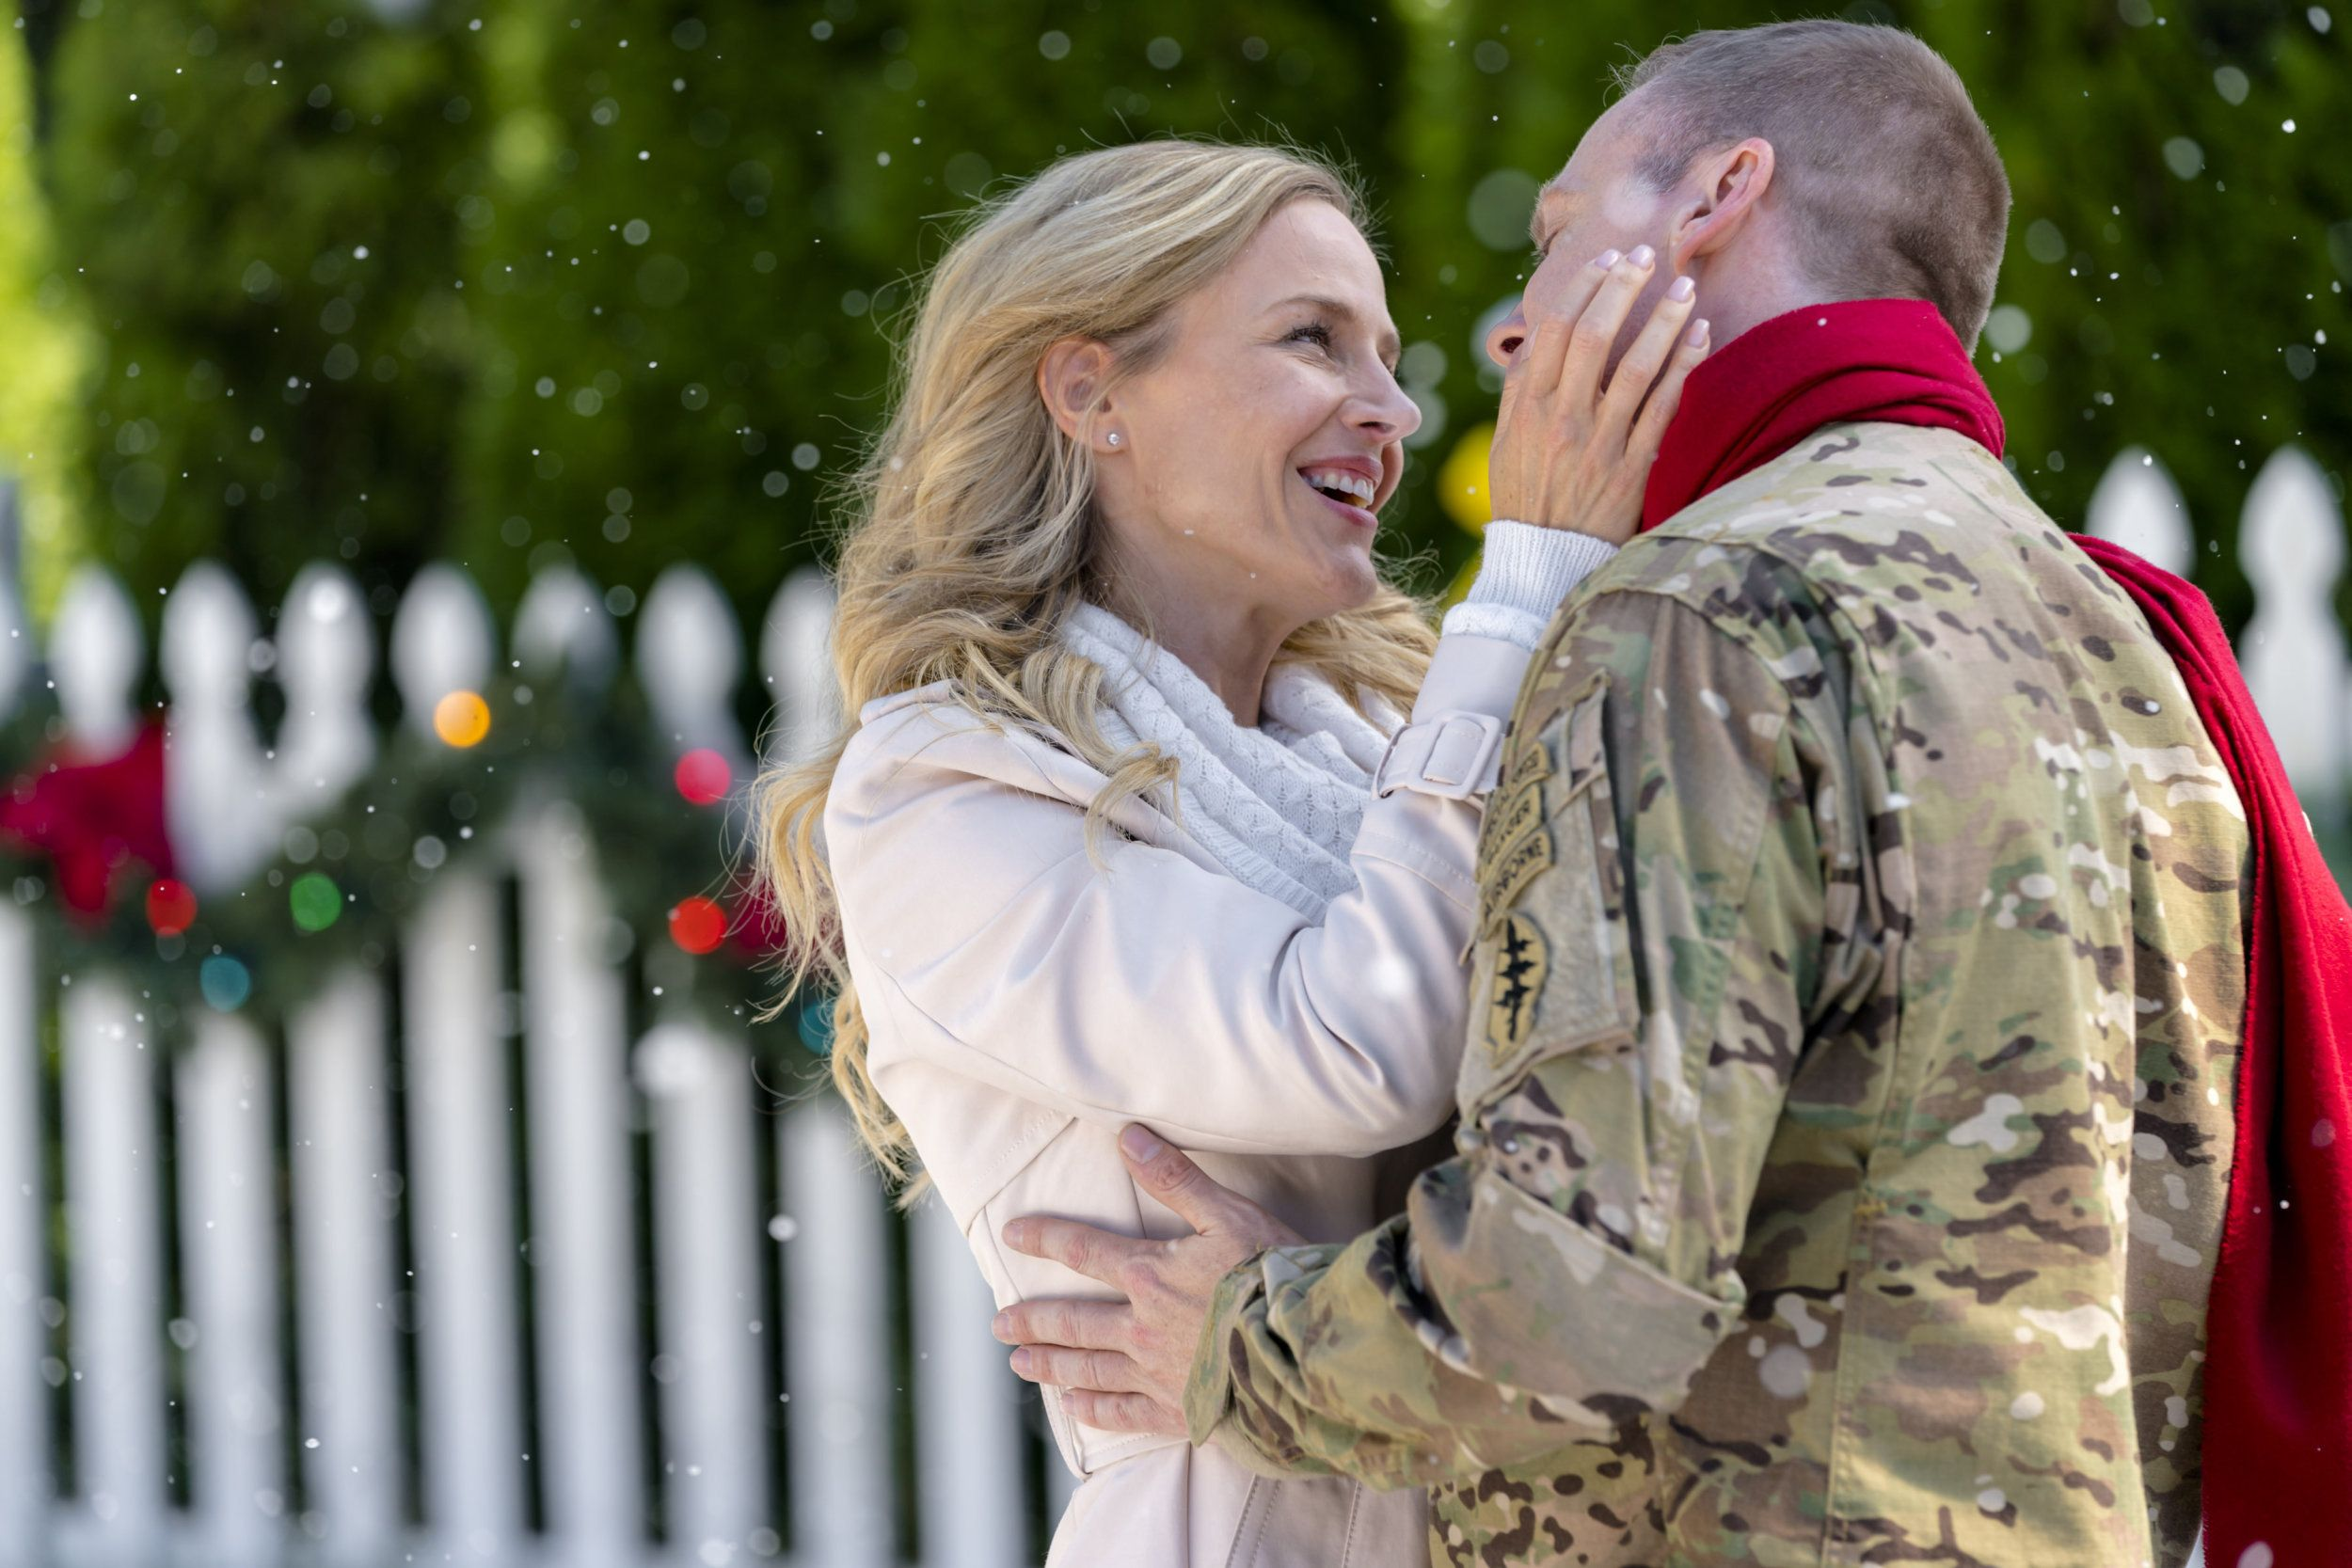 Christmas Homecoming Hallmark.Check Out Photos From The Hallmark Movies Mysteries